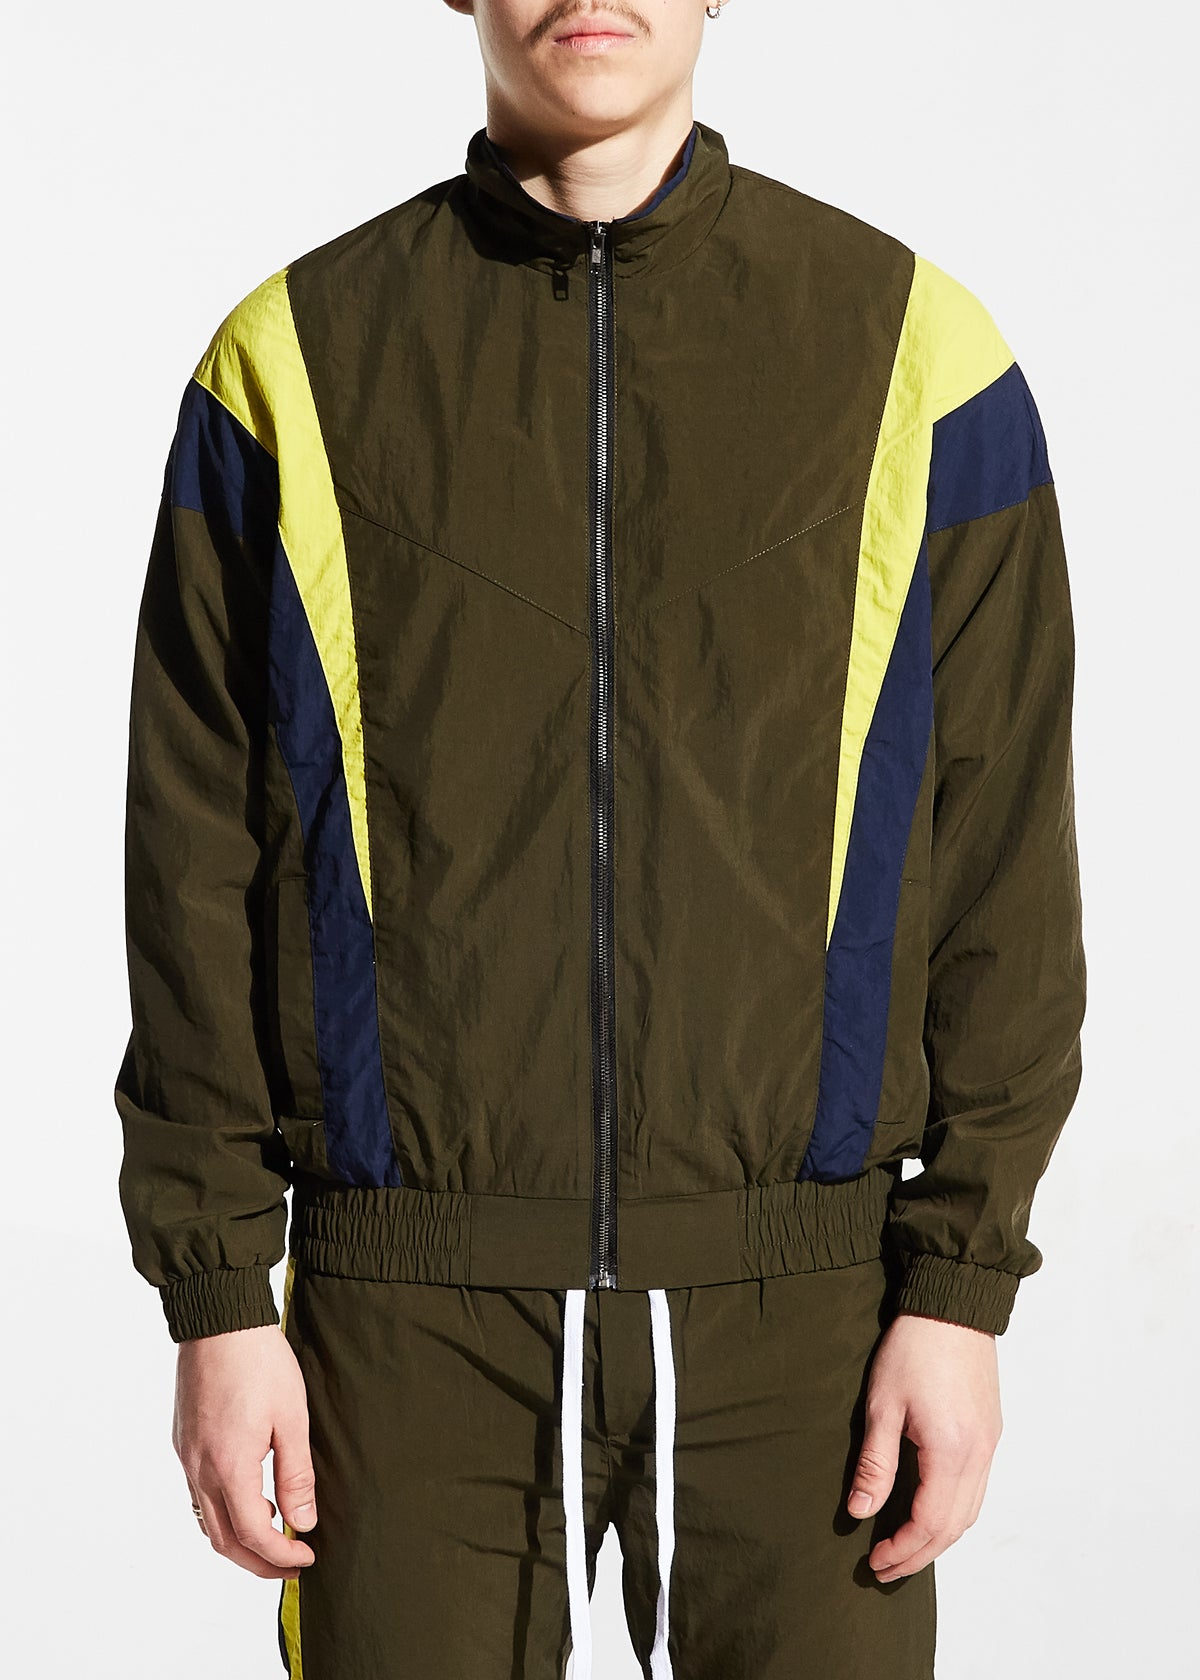 Shelton Windbreaker Jacket (Olive)